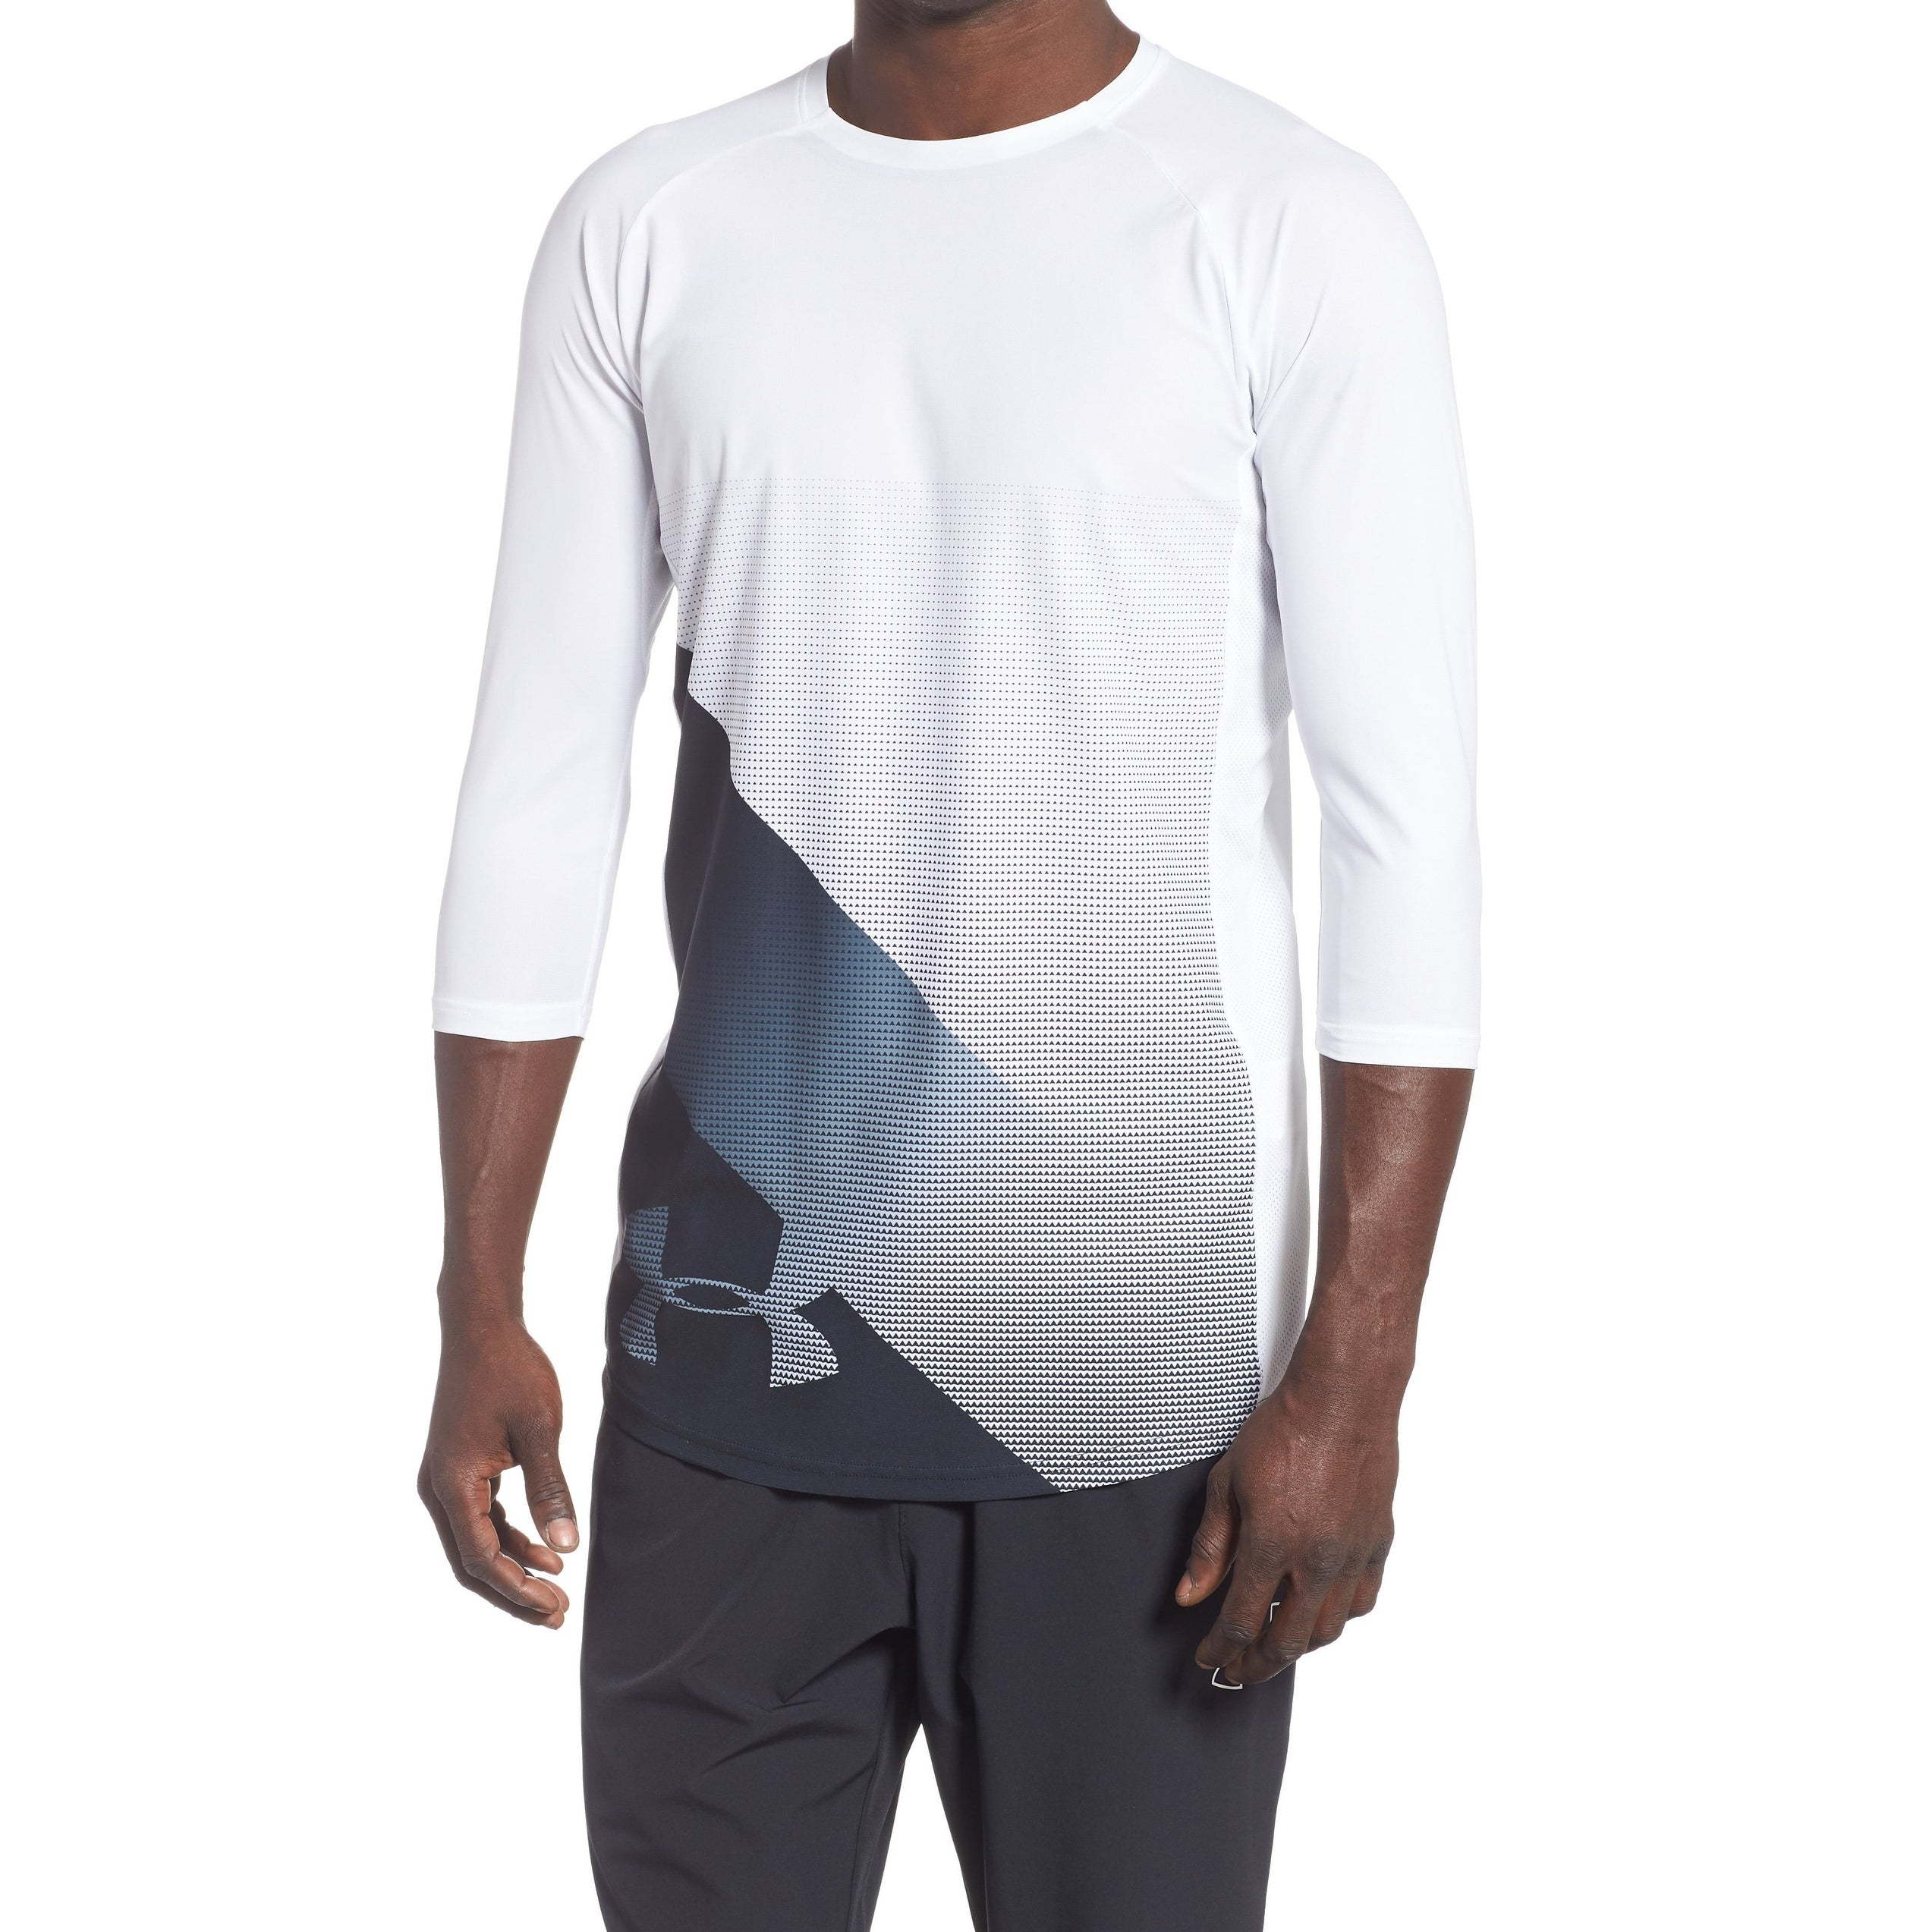 7d2c6abcf2 Buy Under Armour Shirts Online at Overstock | Our Best Athletic Clothing  Deals